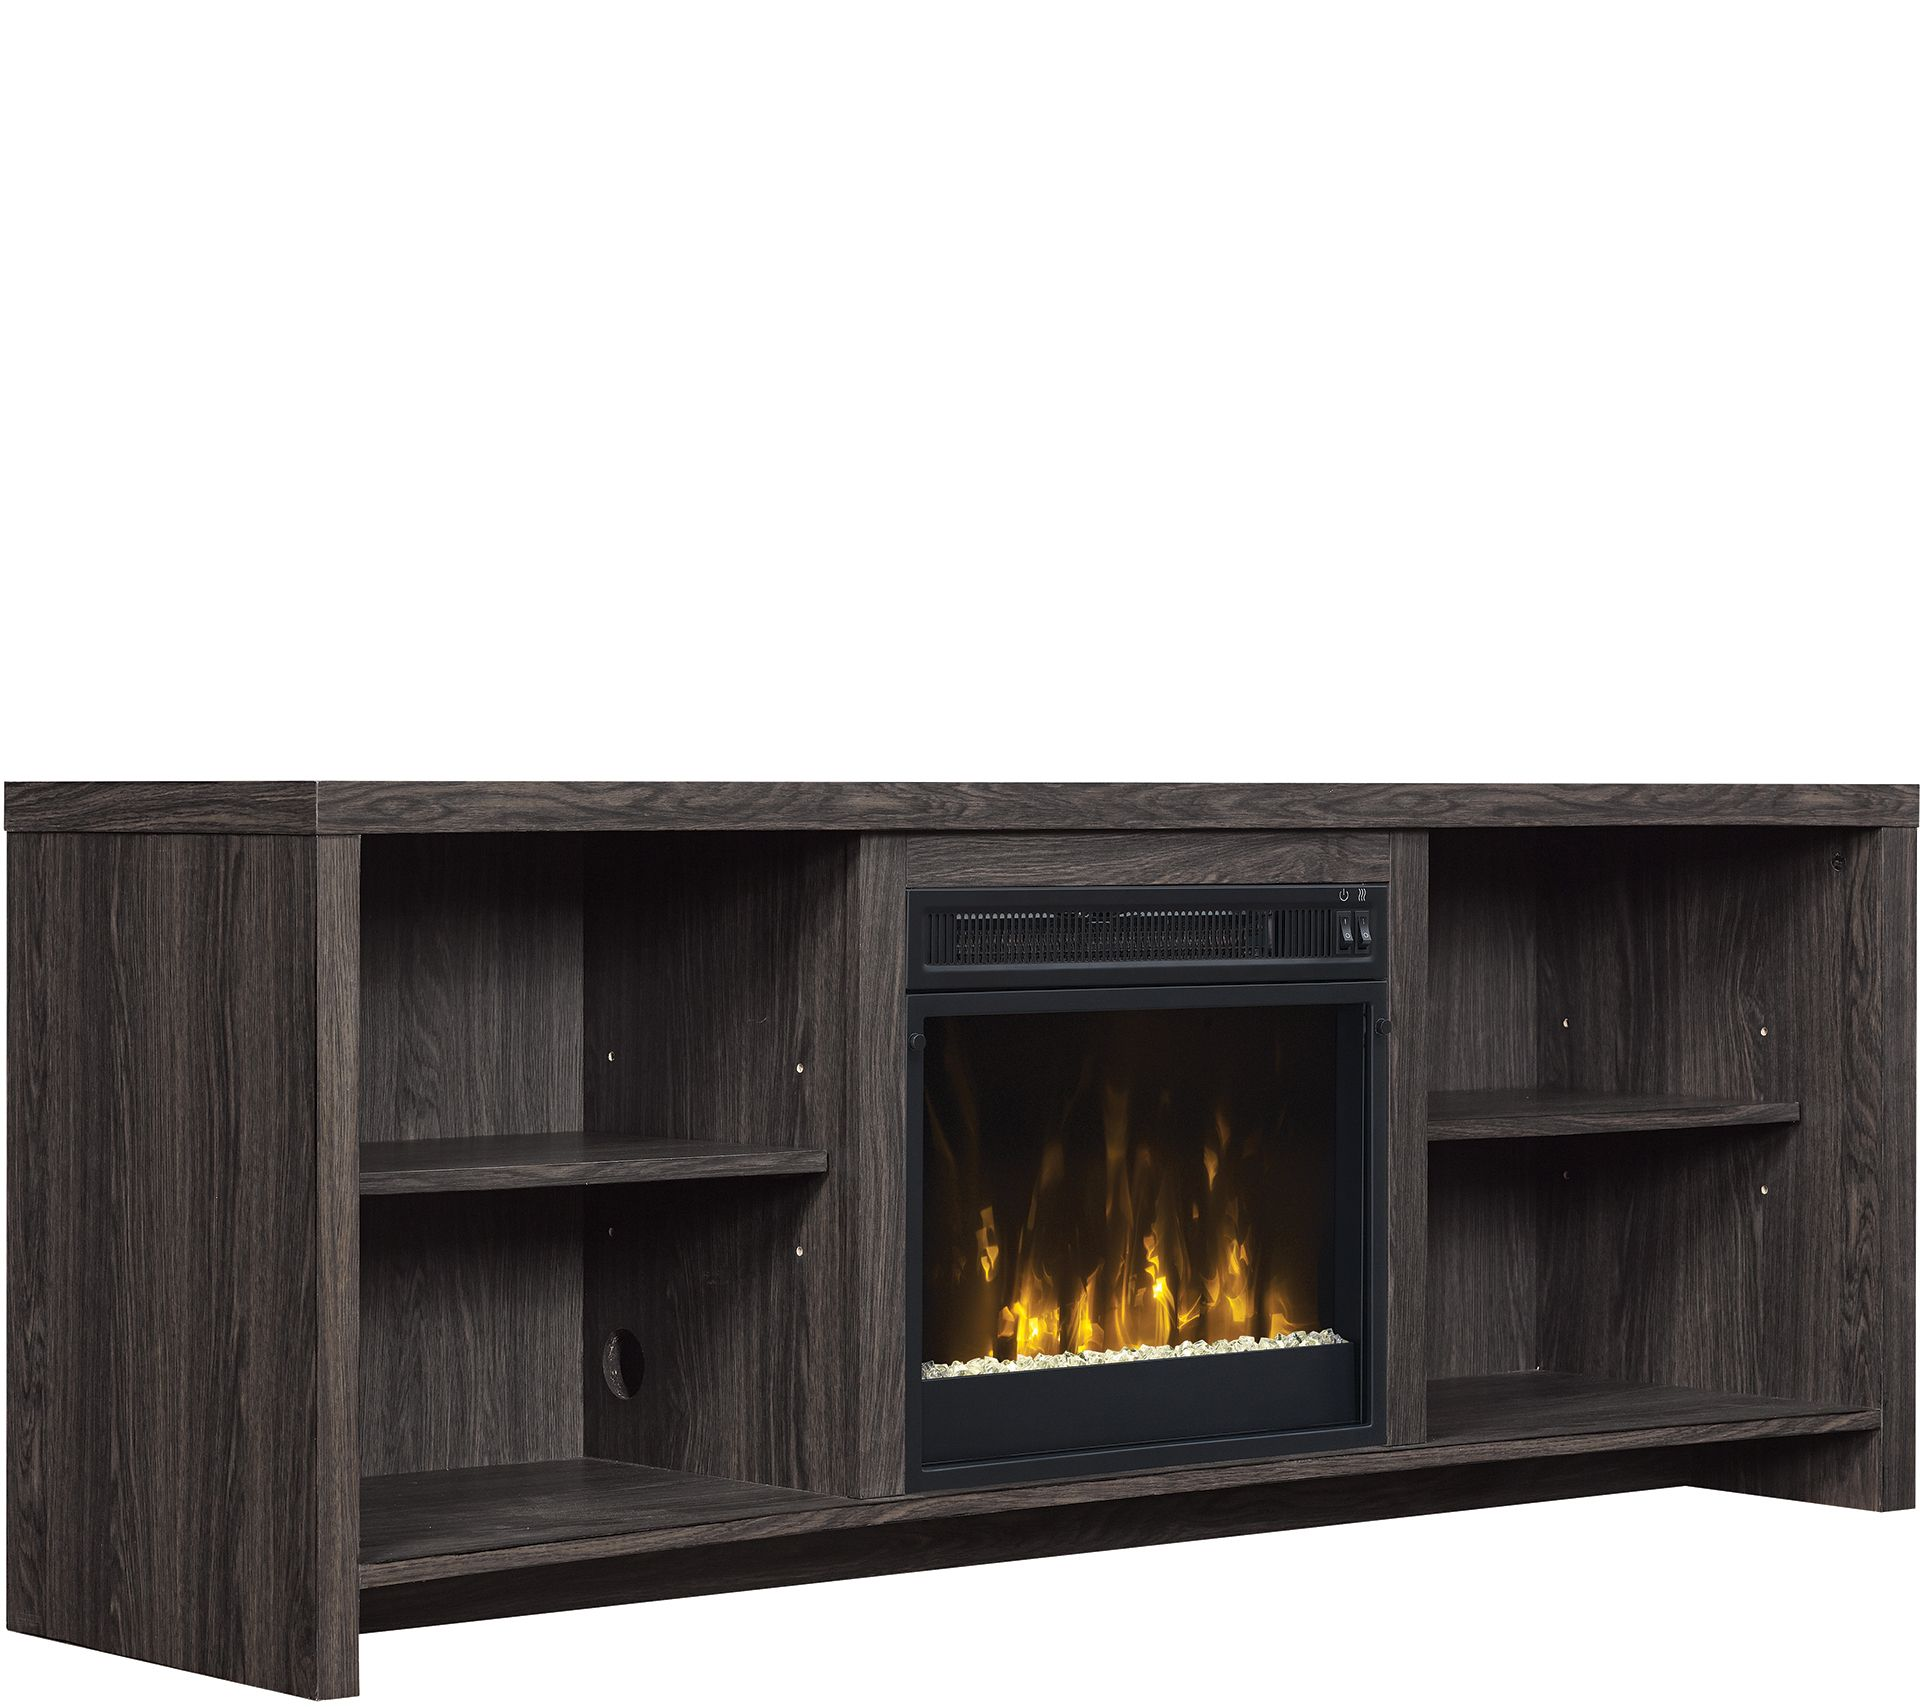 ClassicFlame Shelter Cove Fireplace TV Stand for TVs up to 65 ...